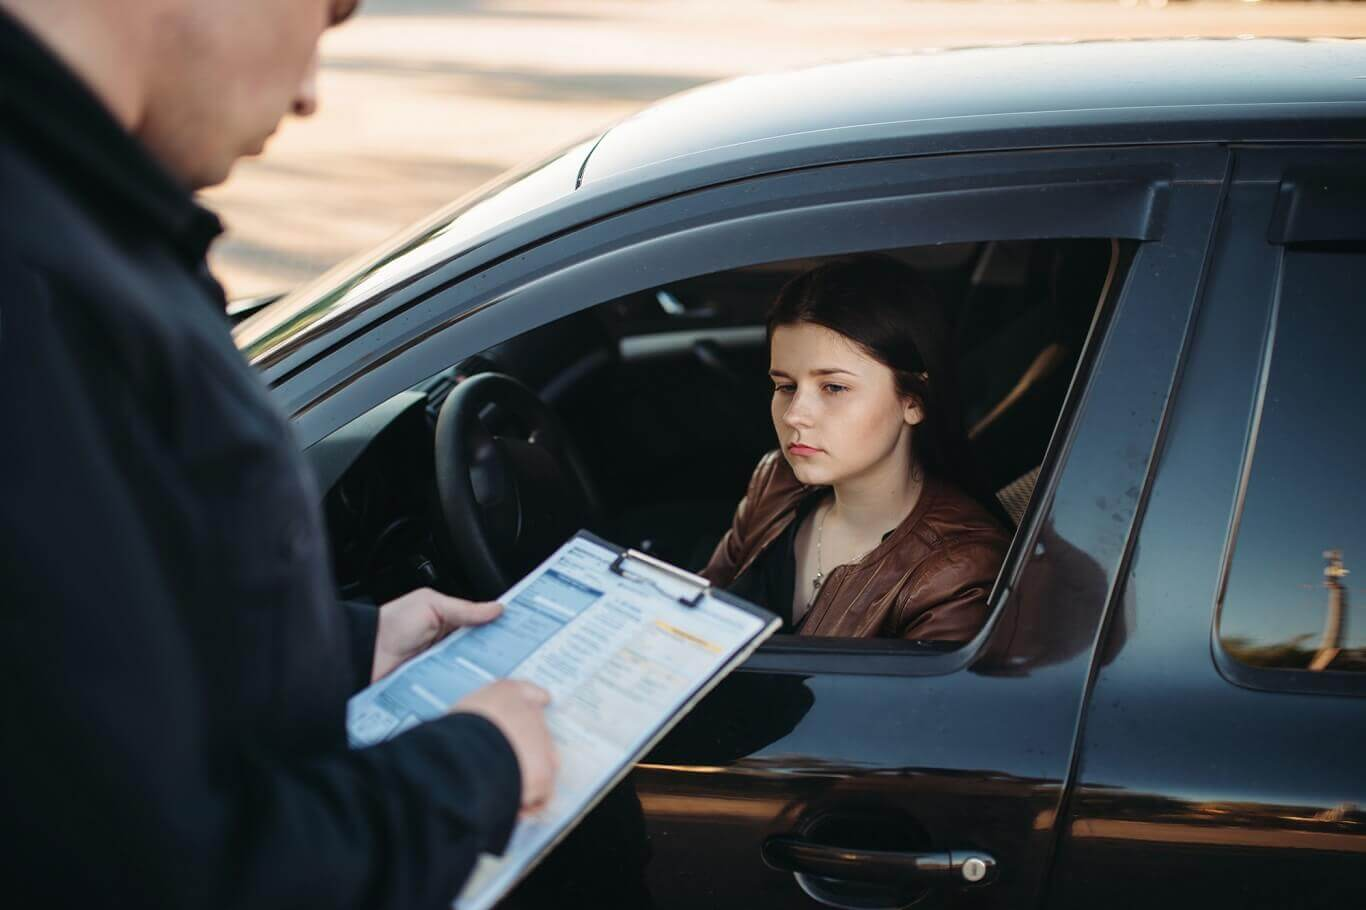 How to Find Best Car Insurance